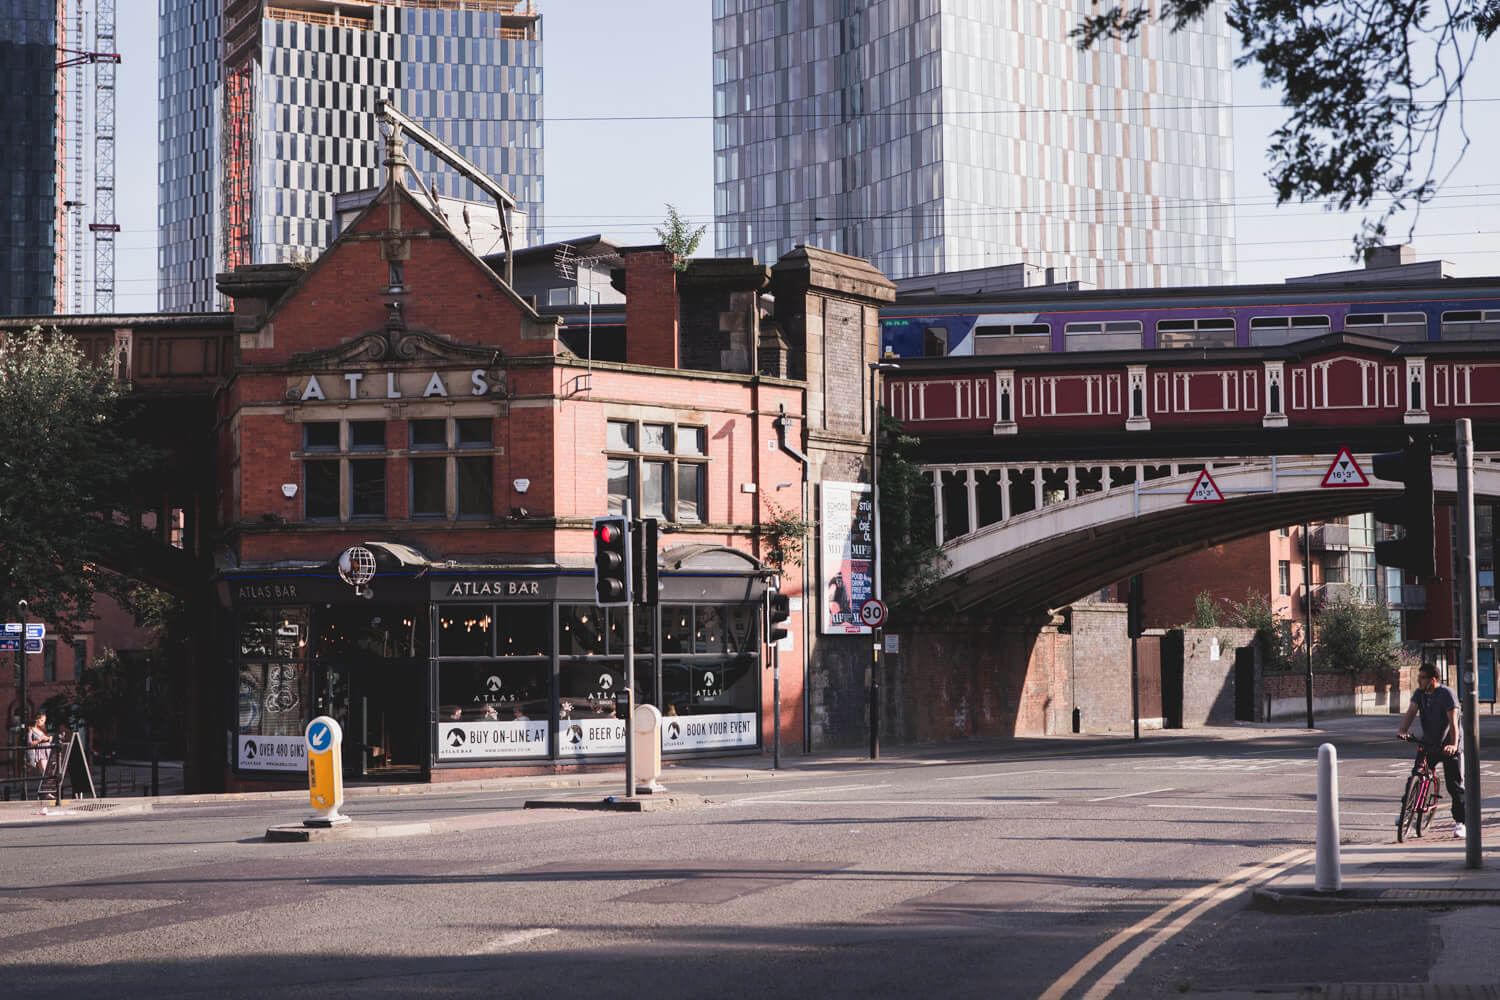 Castlefield Neighborhood buildings made of brick with a bridge in Manchester, UK. There are tall buildings in the background.